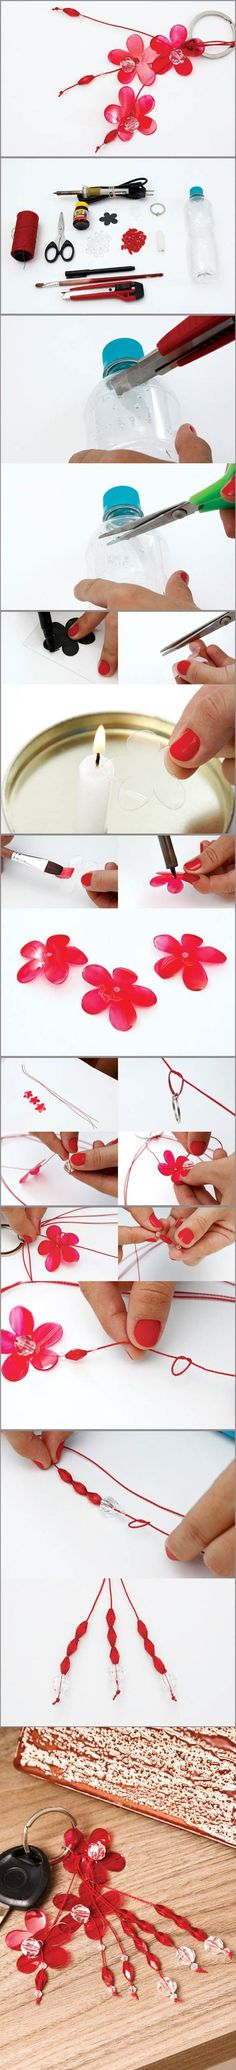 DIY Flower Key Chains from Plastic Bottle 2